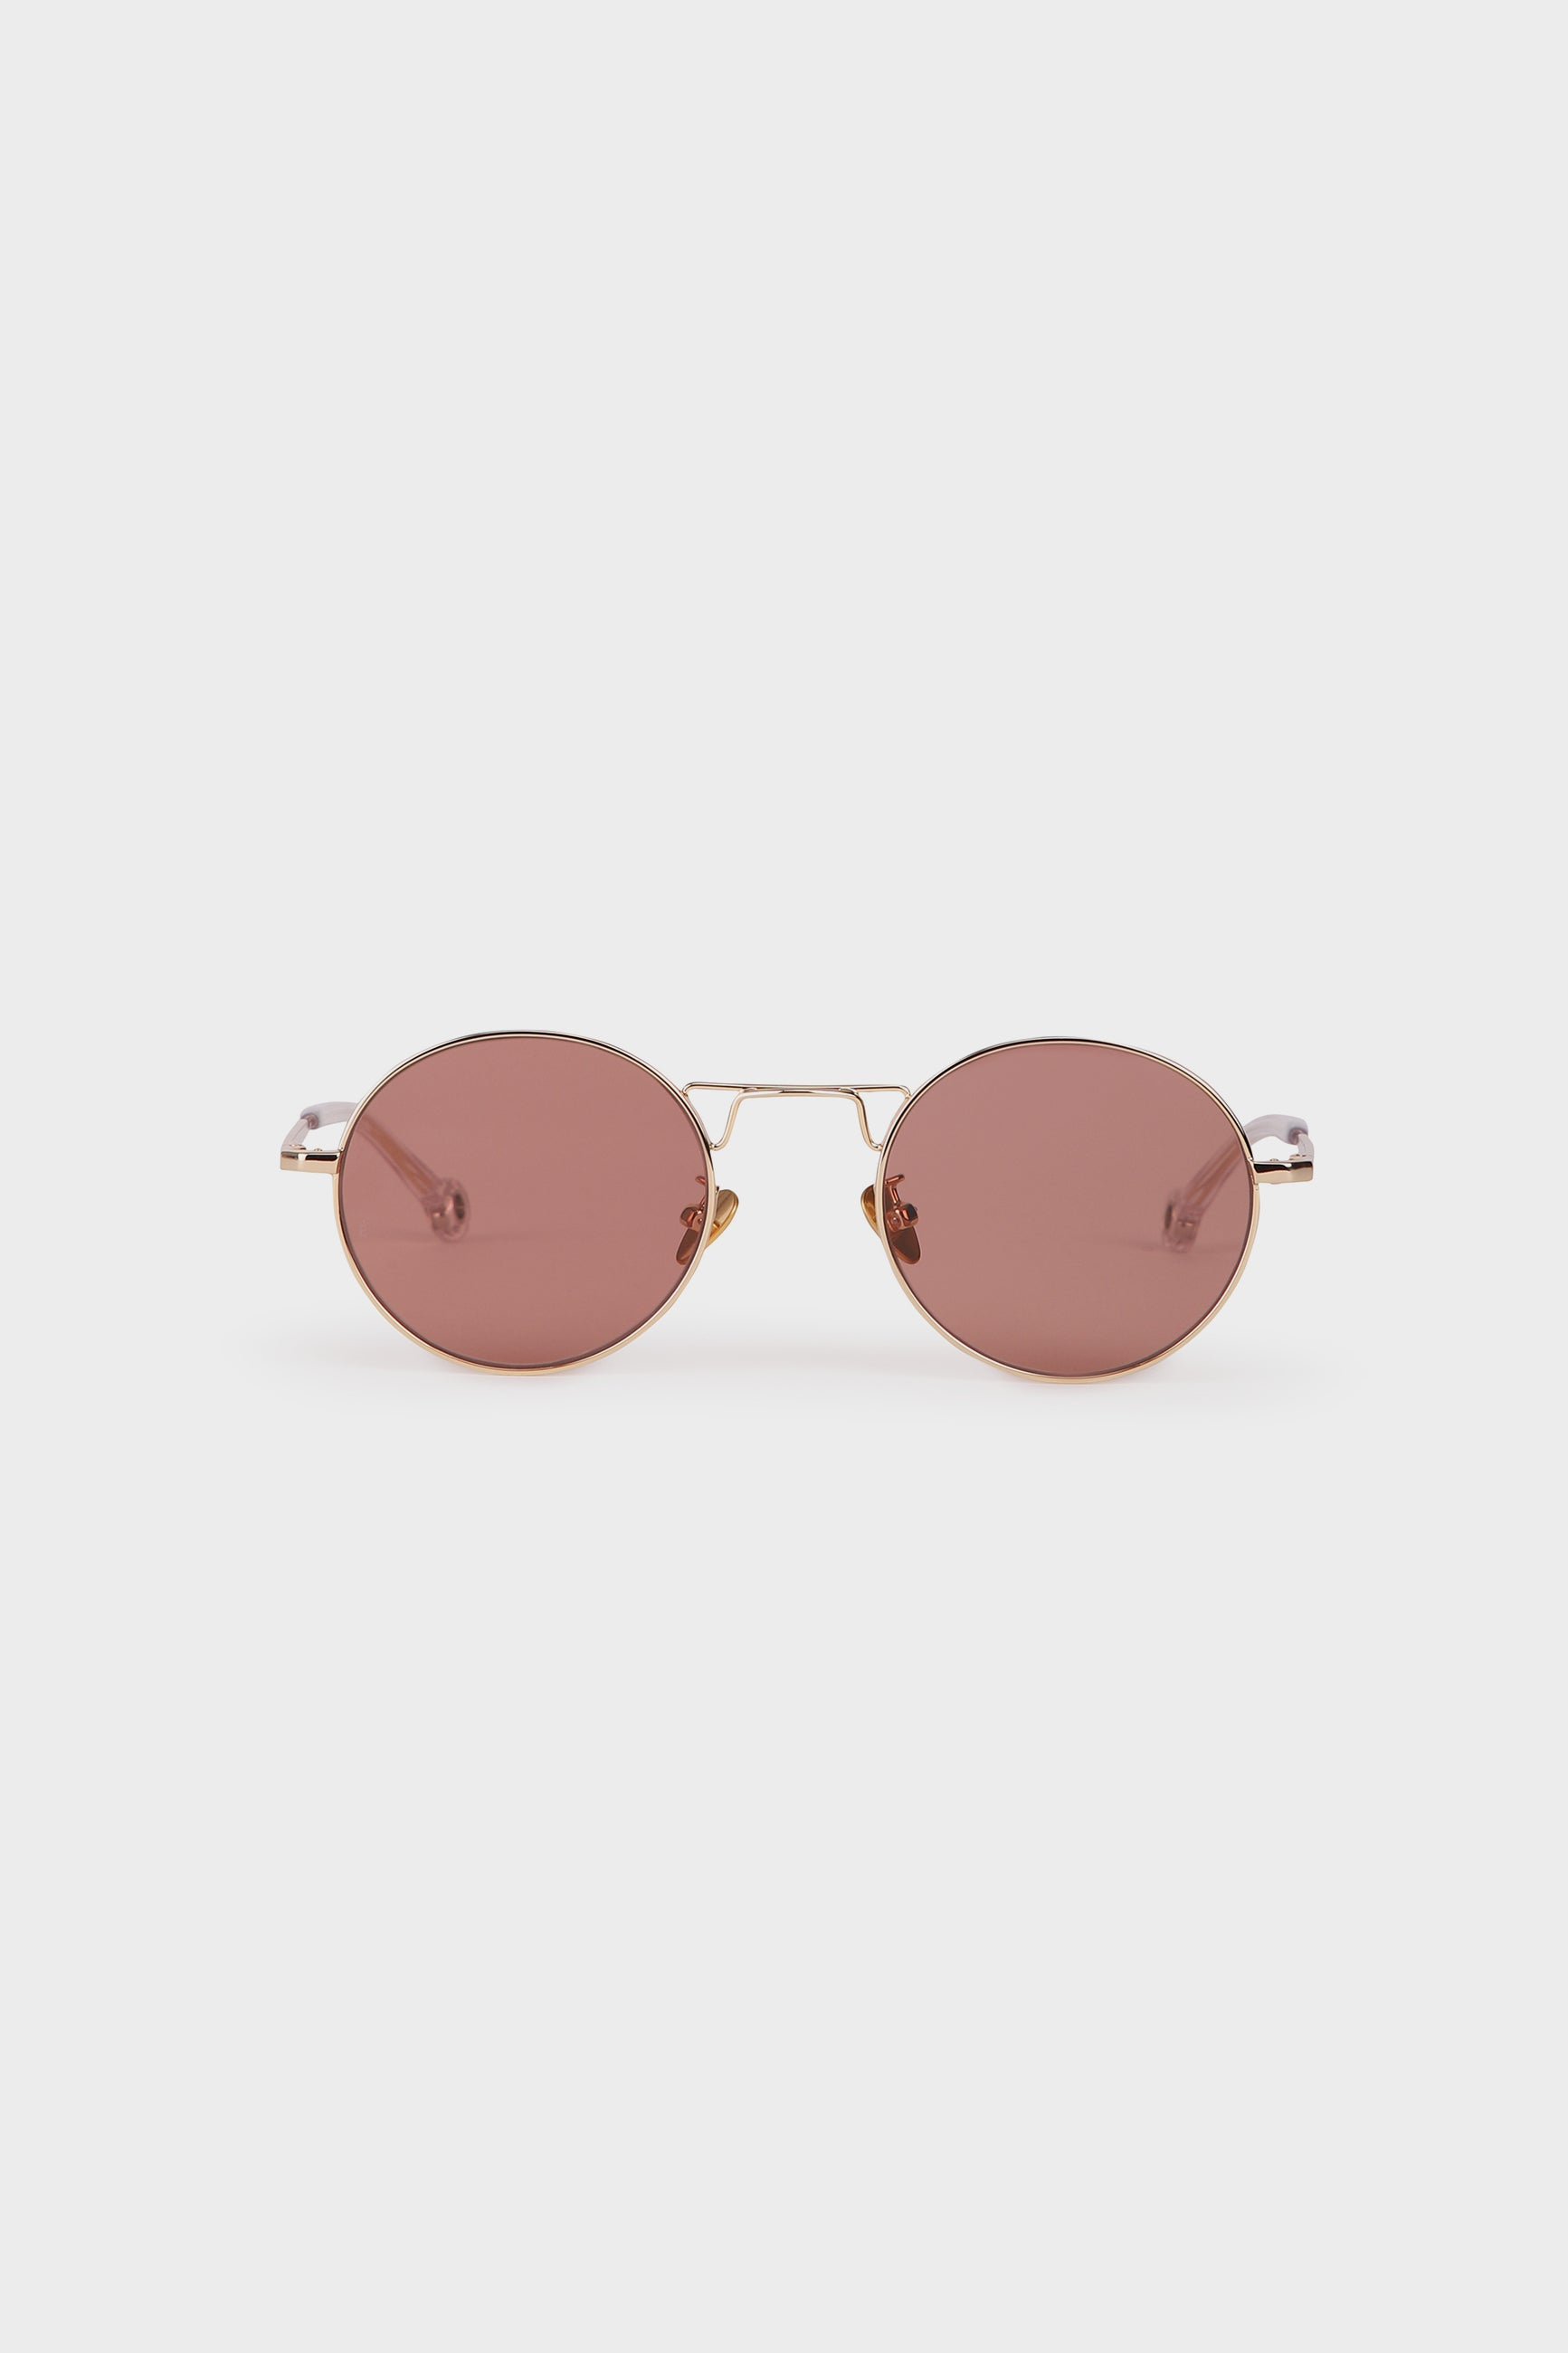 Études Resist Gold Pink Sunglasses 1